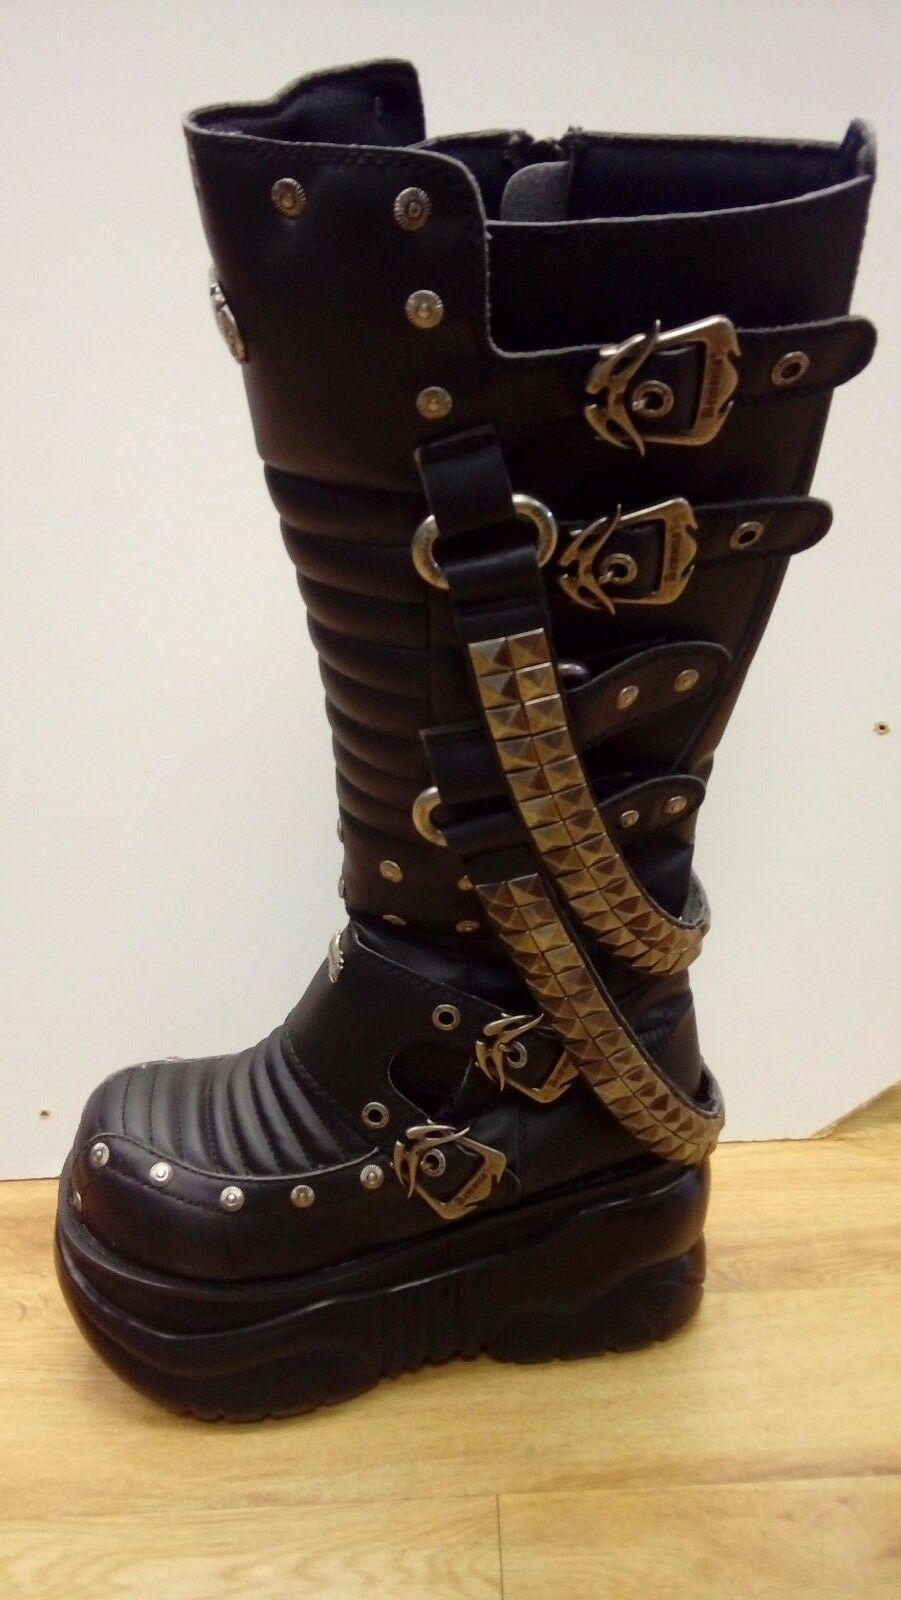 Demonia / Size 9 / Goth Boots / Leather - 1033